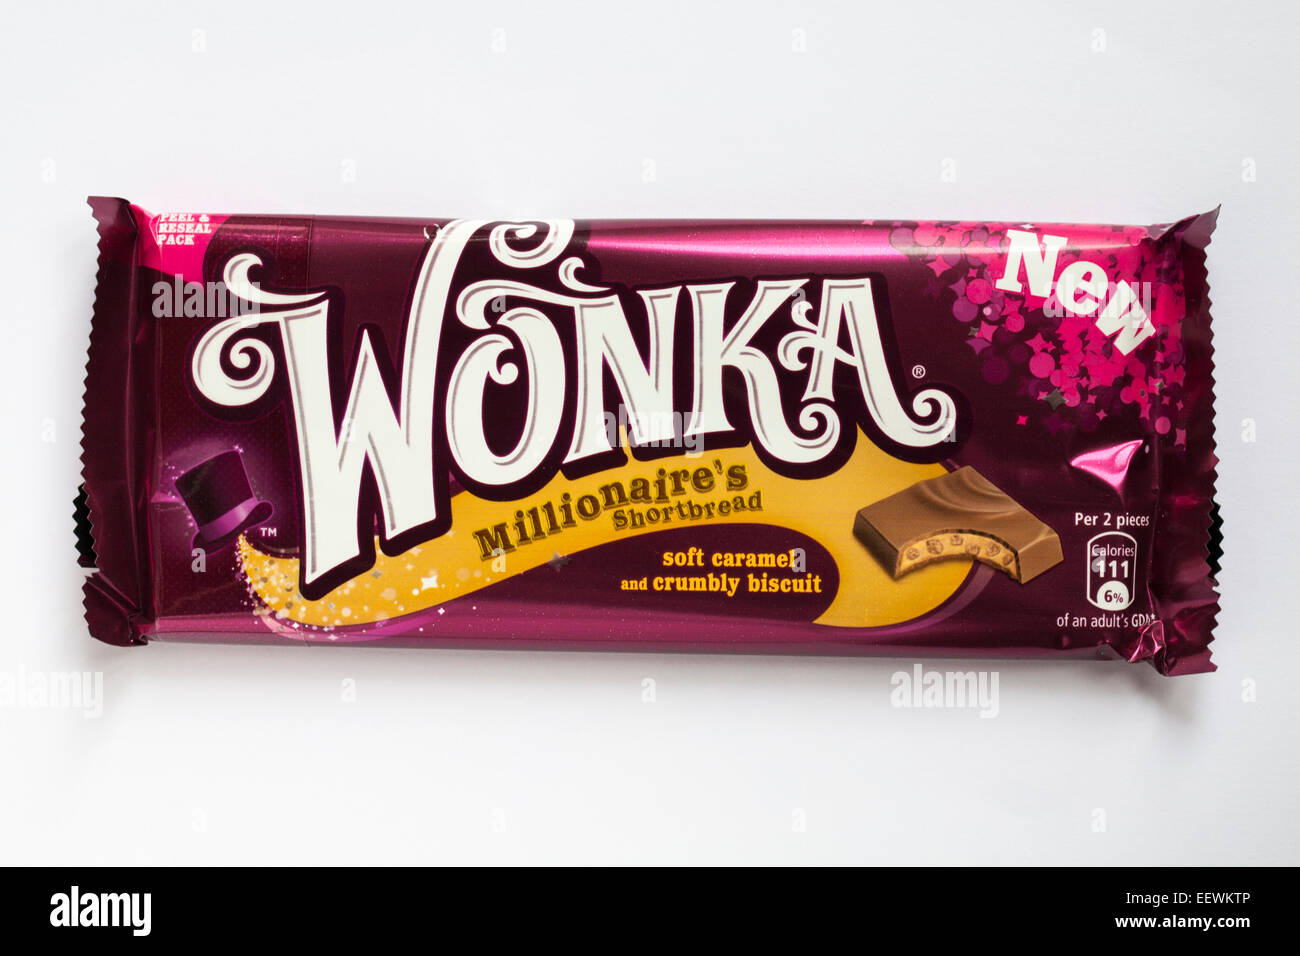 New Wonka Millionaire's shortbread flavoured chocolate bar ...